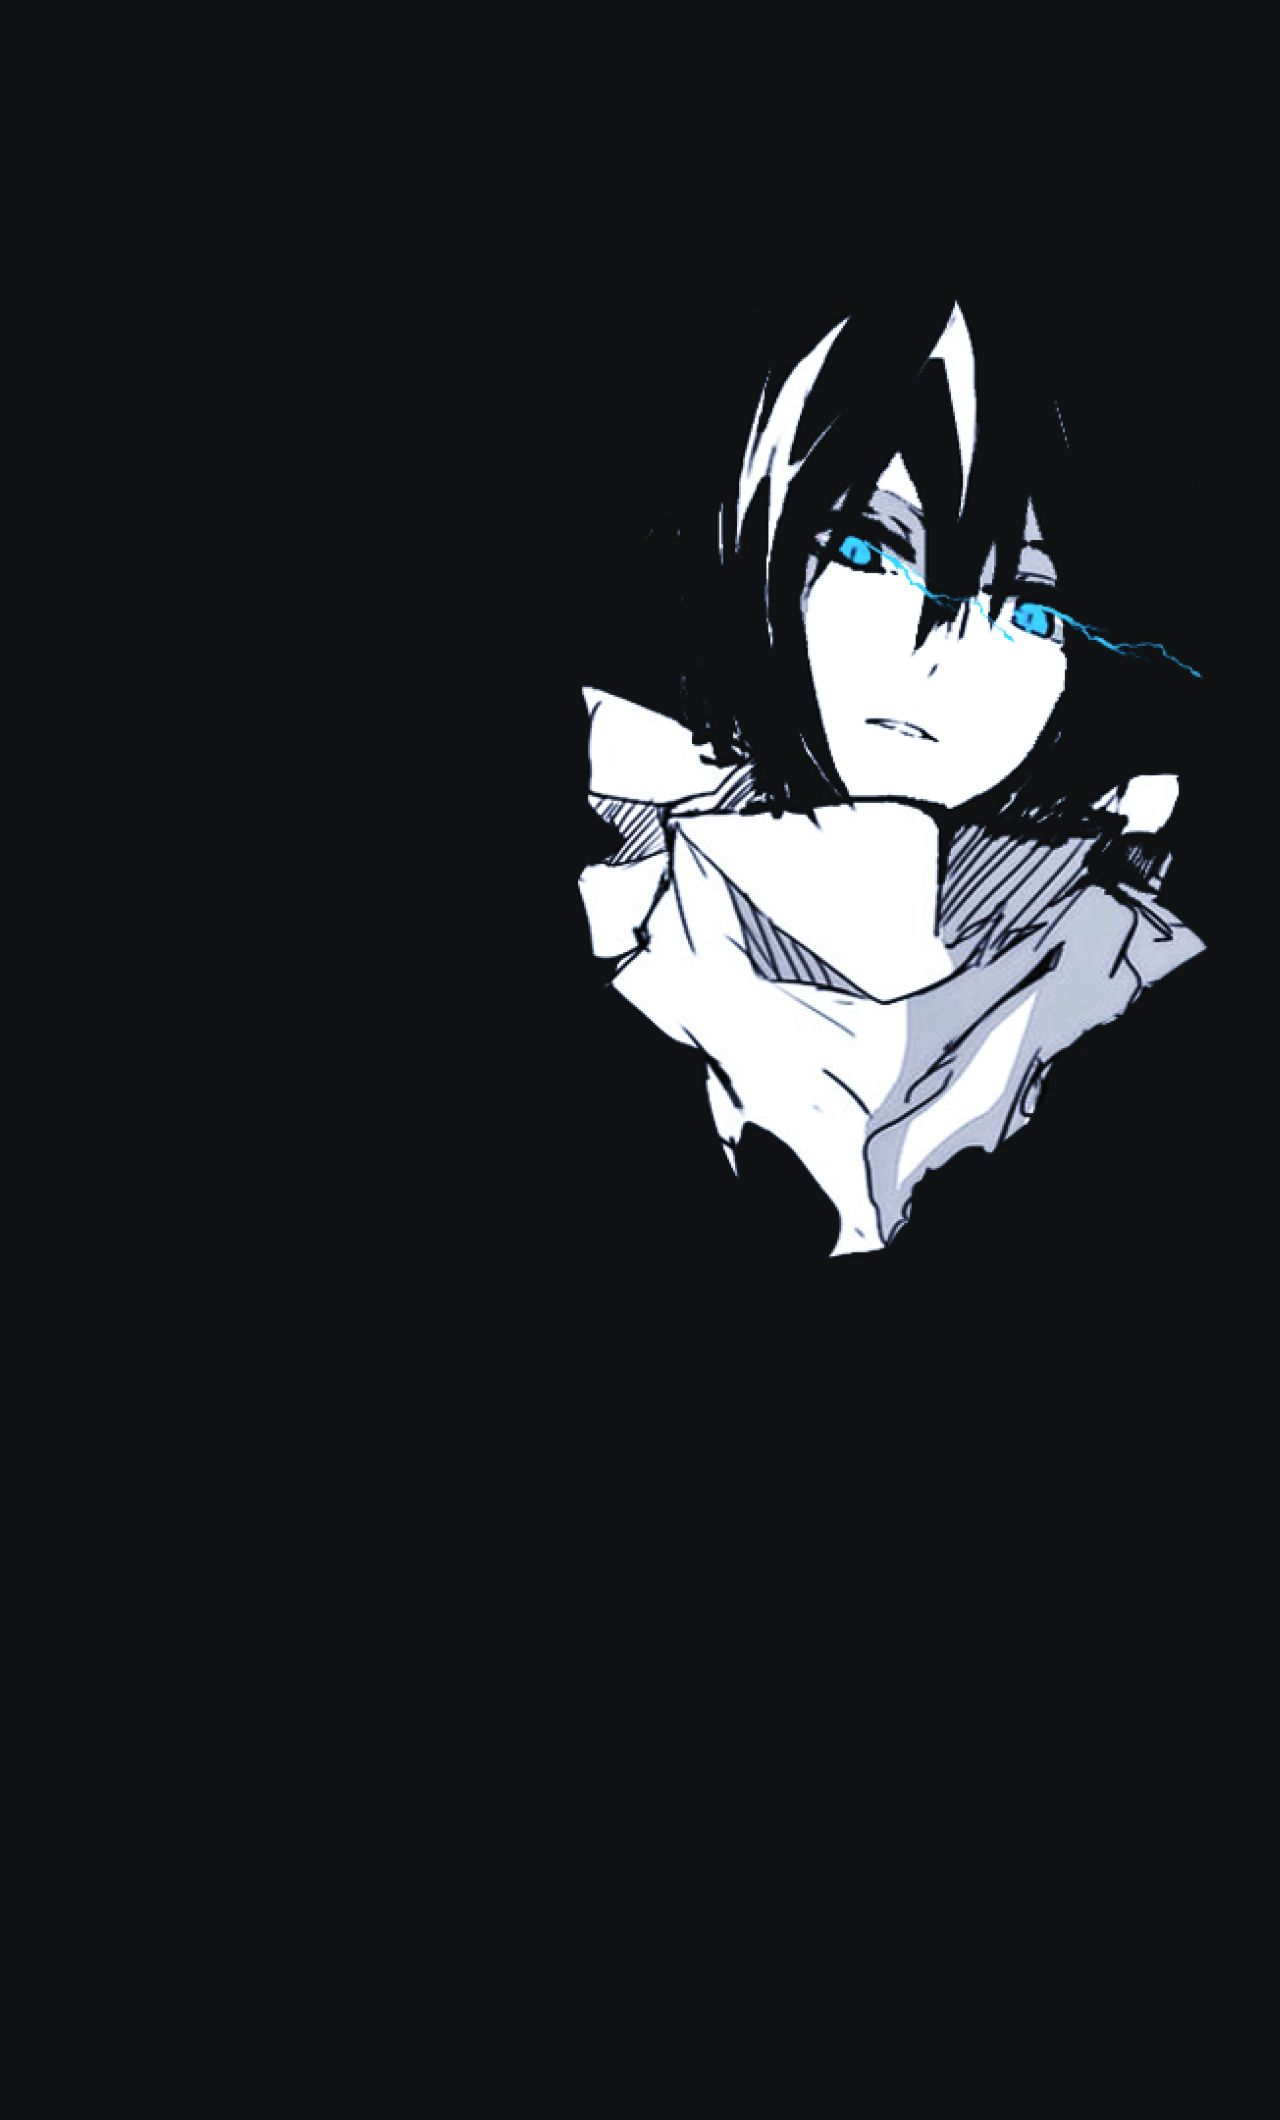 Anime Black Iphone Wallpaper Black Cat Anime Anime Wallpaper Phone Noragami Anime